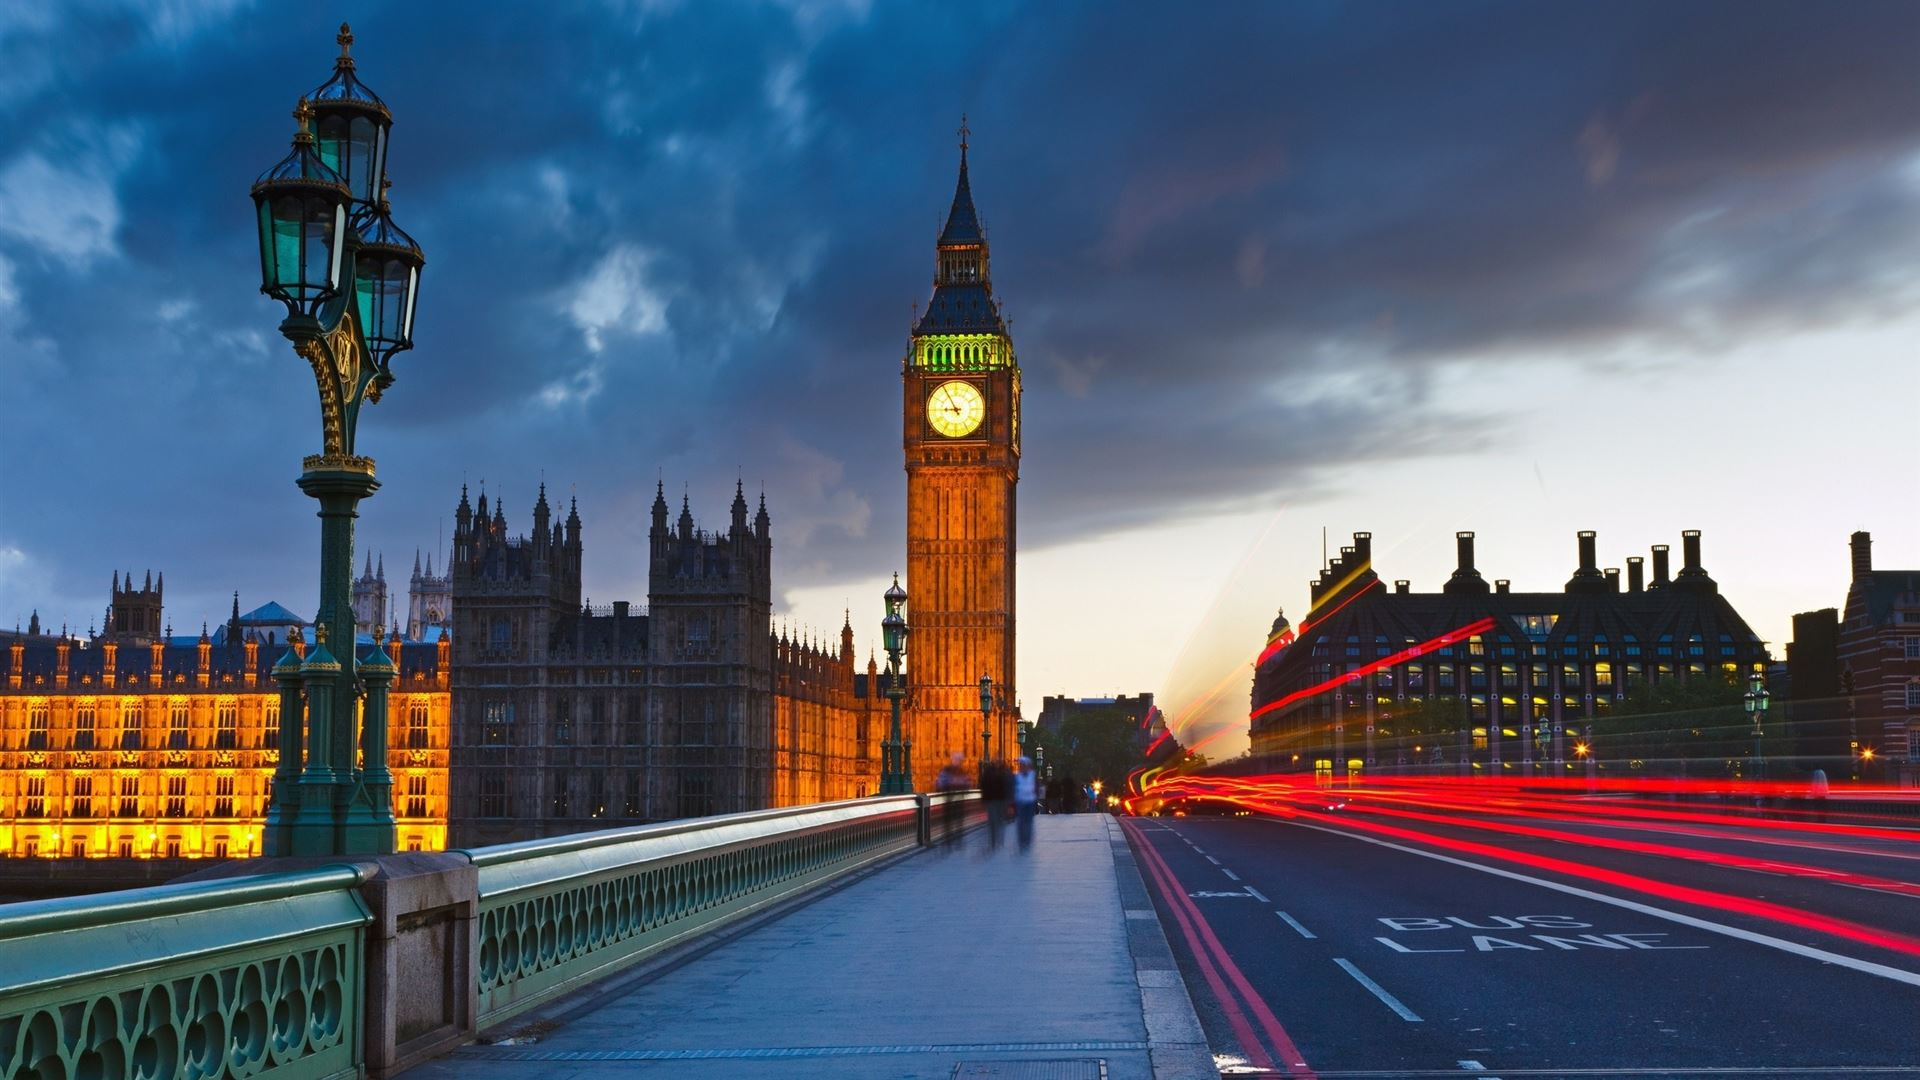 big ben uk london city street mac wallpaper download